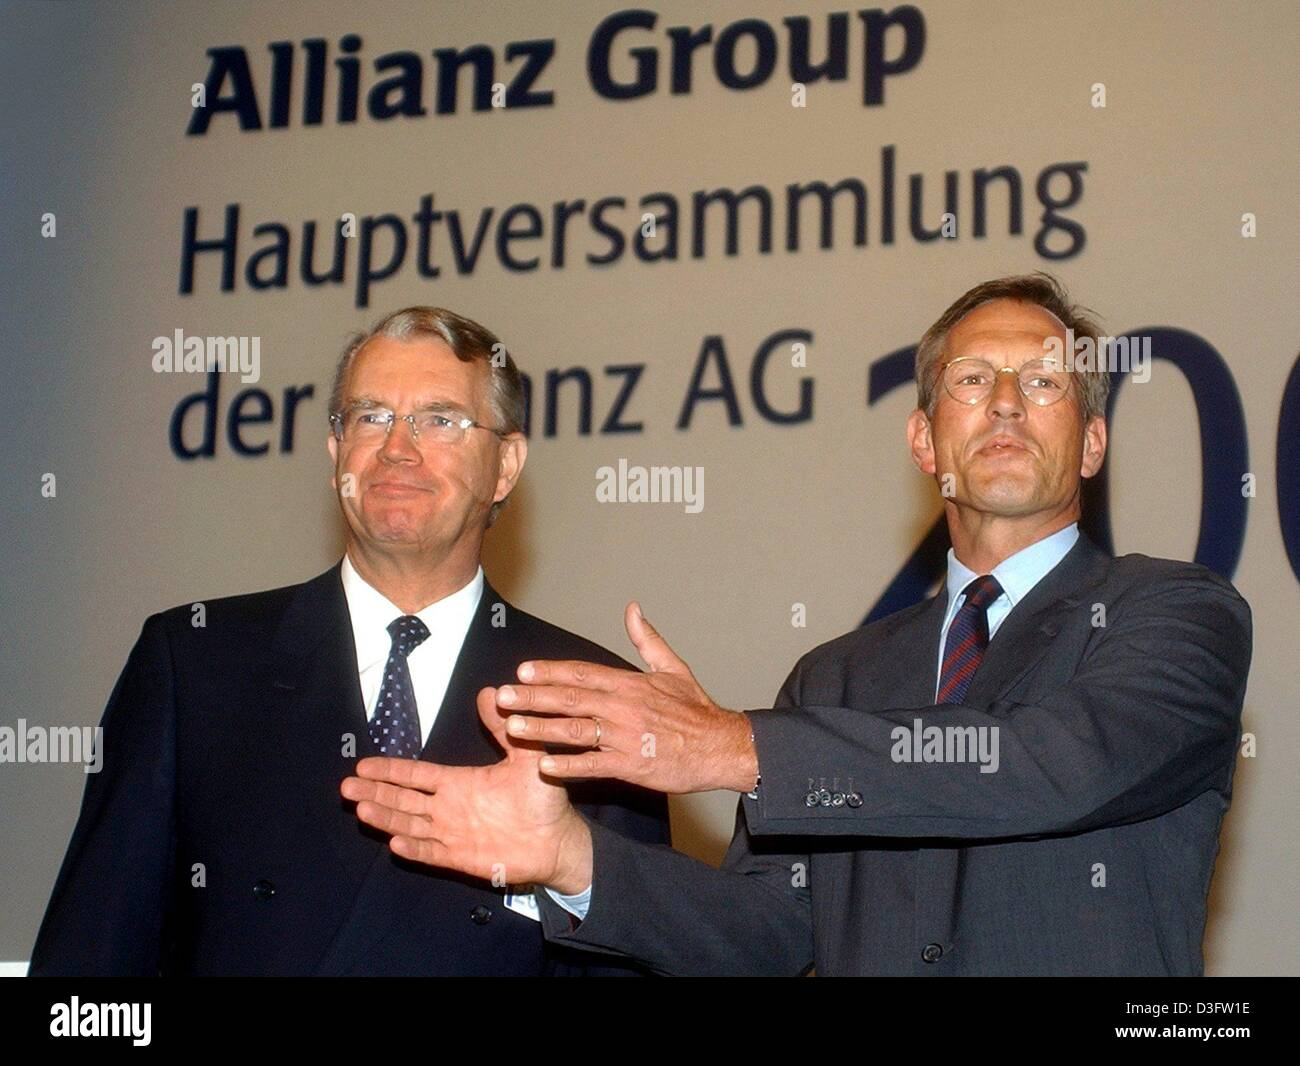 (dpa) - Henning Schulte-Noelle (L), parting CEO of the financial services and insurance group Allianz AG, stands with Michael Diekmann, new CEO and successor of Noelle, during the general meeting (Hauptversammlung) of the Allianz group in Munich, 28 April 2003. In December 2002 Schulte-Noelle had announced to step down. During the general meeting he defended his decision to take ov Stock Photo